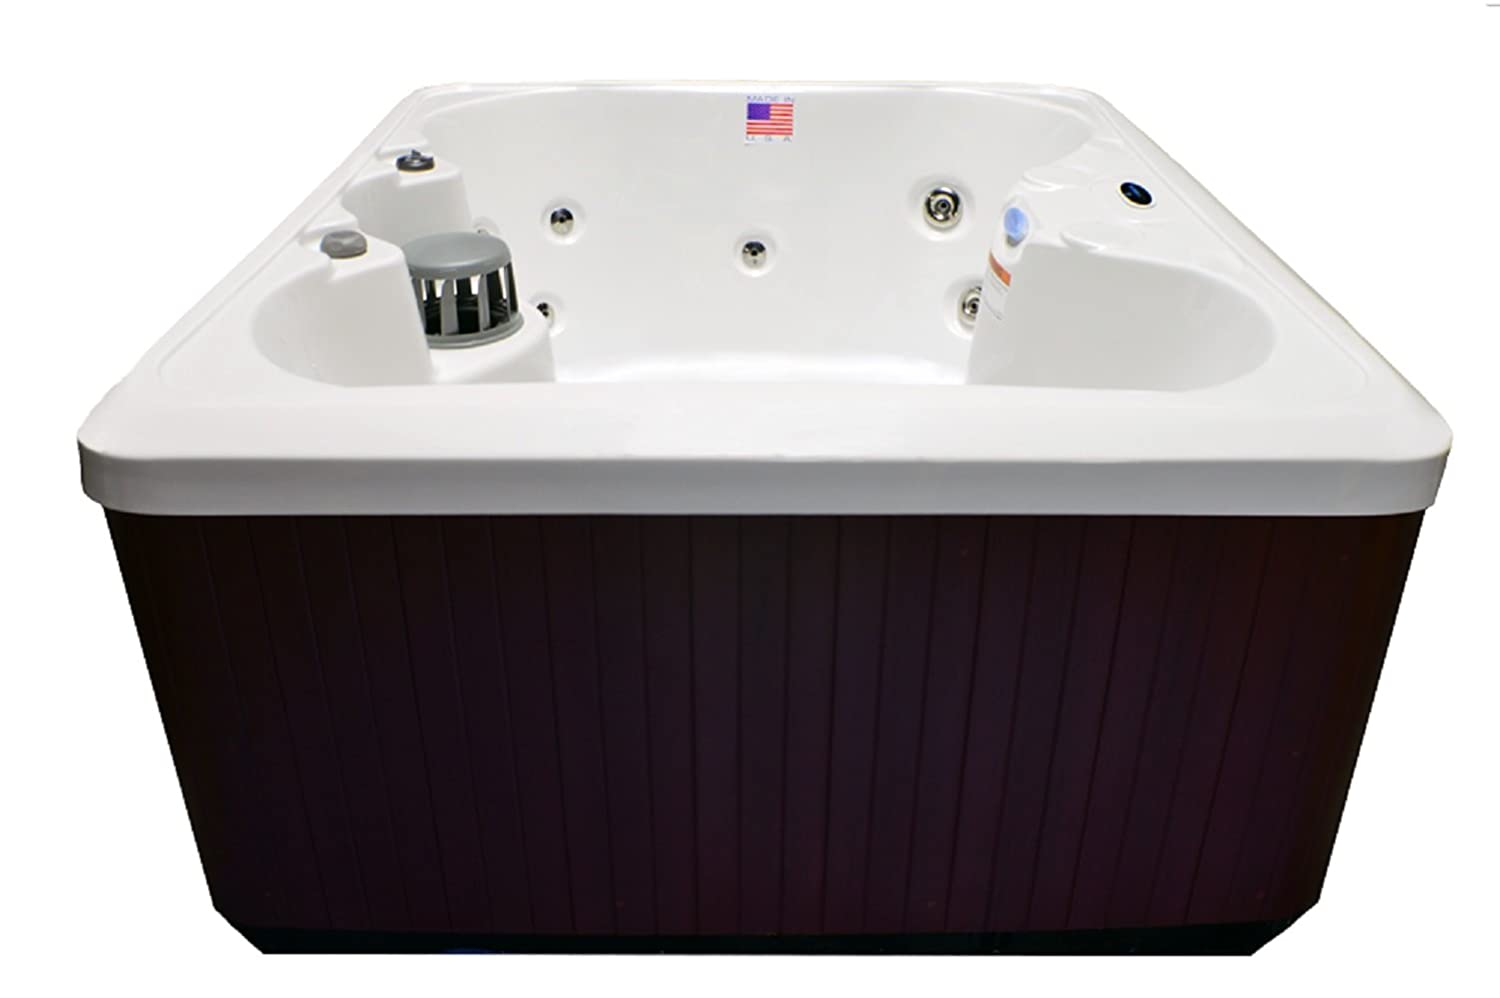 The Best Outdoor Hot Tubs For Your Garden: Reviews & Buying Guide 9